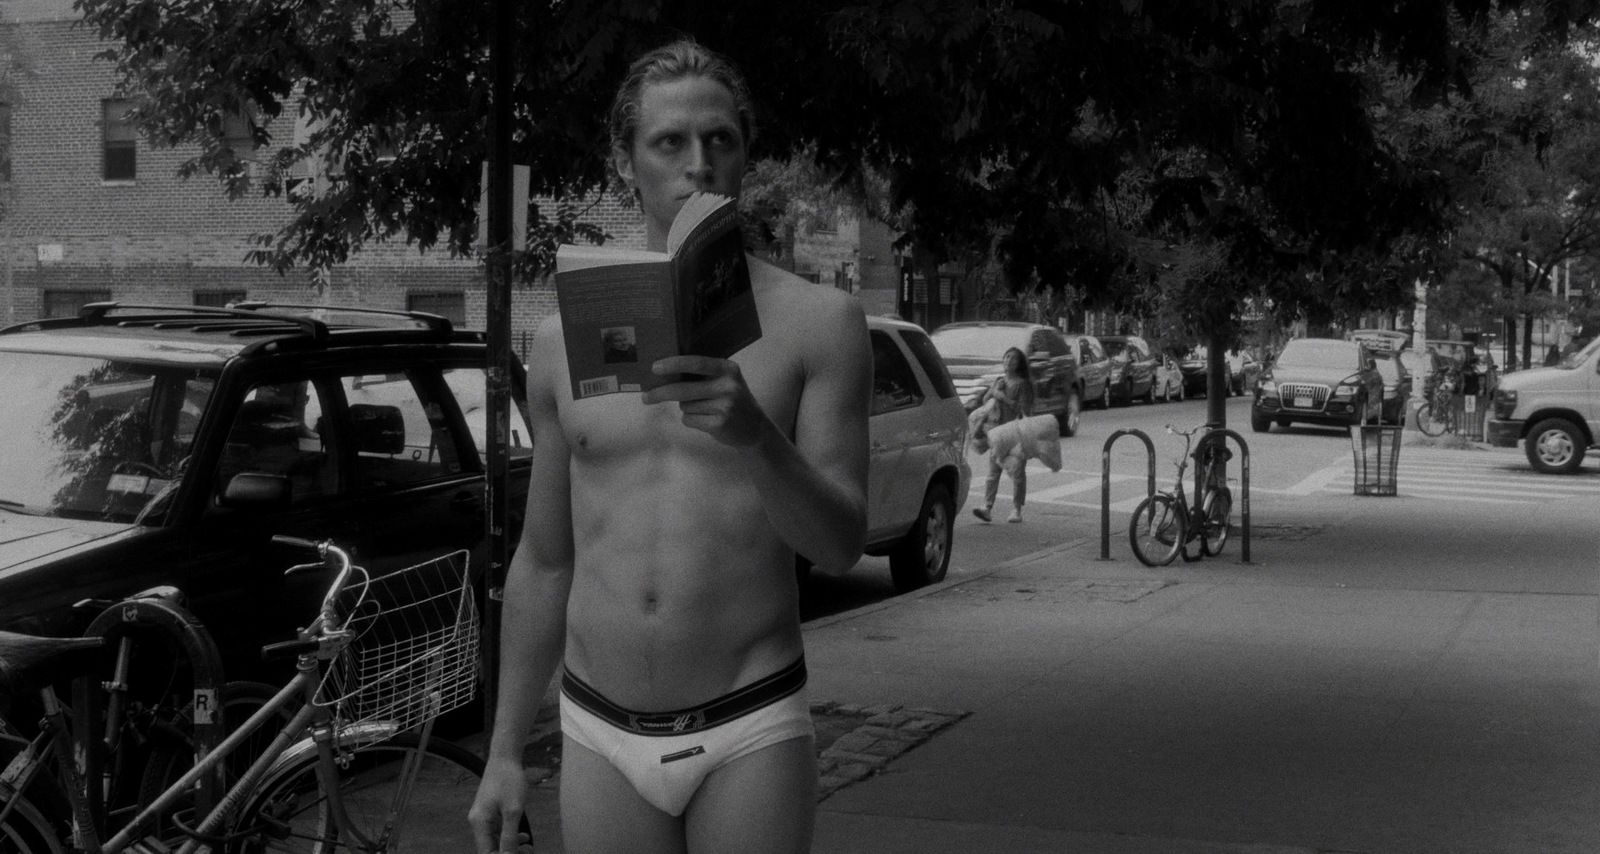 THE BRIEF EXISTENTIAL CRISIS OF A YOUNG UNDERWEAR MODEL